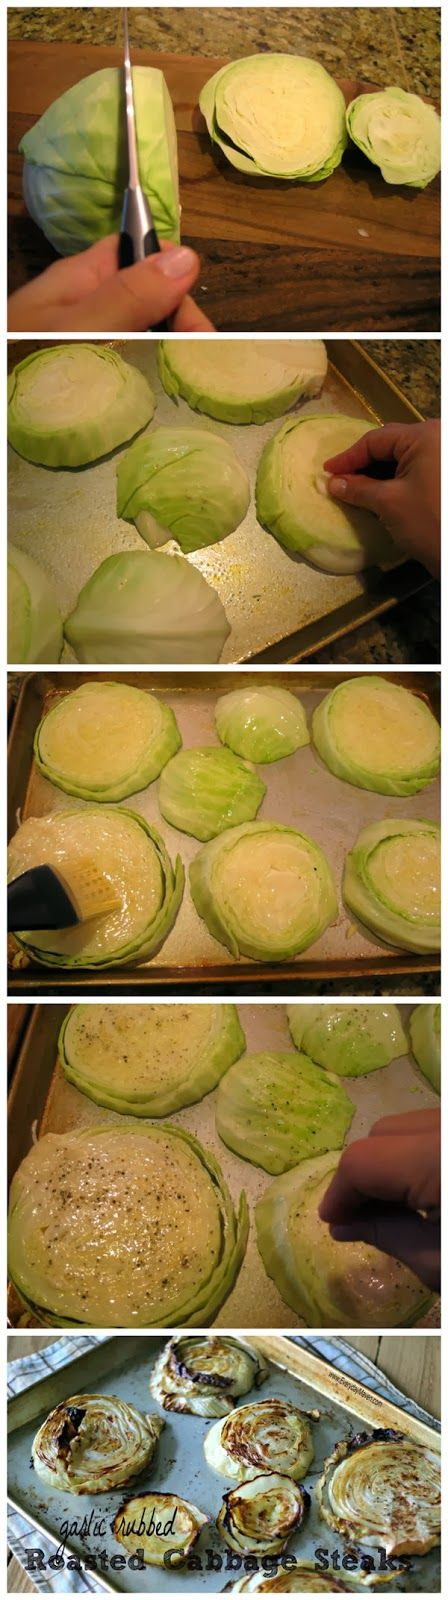 "Garlic Rubbed Roasted Cabbage Steaks Recipe ♦ 2lb head cabbage, 1"" slices • 1½ Tbs olive oil • 2-3 large garlic cloves, smashed • salt • black pepper • olive oil spray OR non-stick cooking spray ♦ 400º ♦ spray pan, rub both sides w/ garlic, spread olive oil both sides, sprinkle salt n pepper both sides ♦ 30 min each side until lightly brown and crispy. Adapted from Martha Stewart recipe: http://www.marthastewart.com/315062/roasted-cabbage-wedges (says roast 40-45 min)"